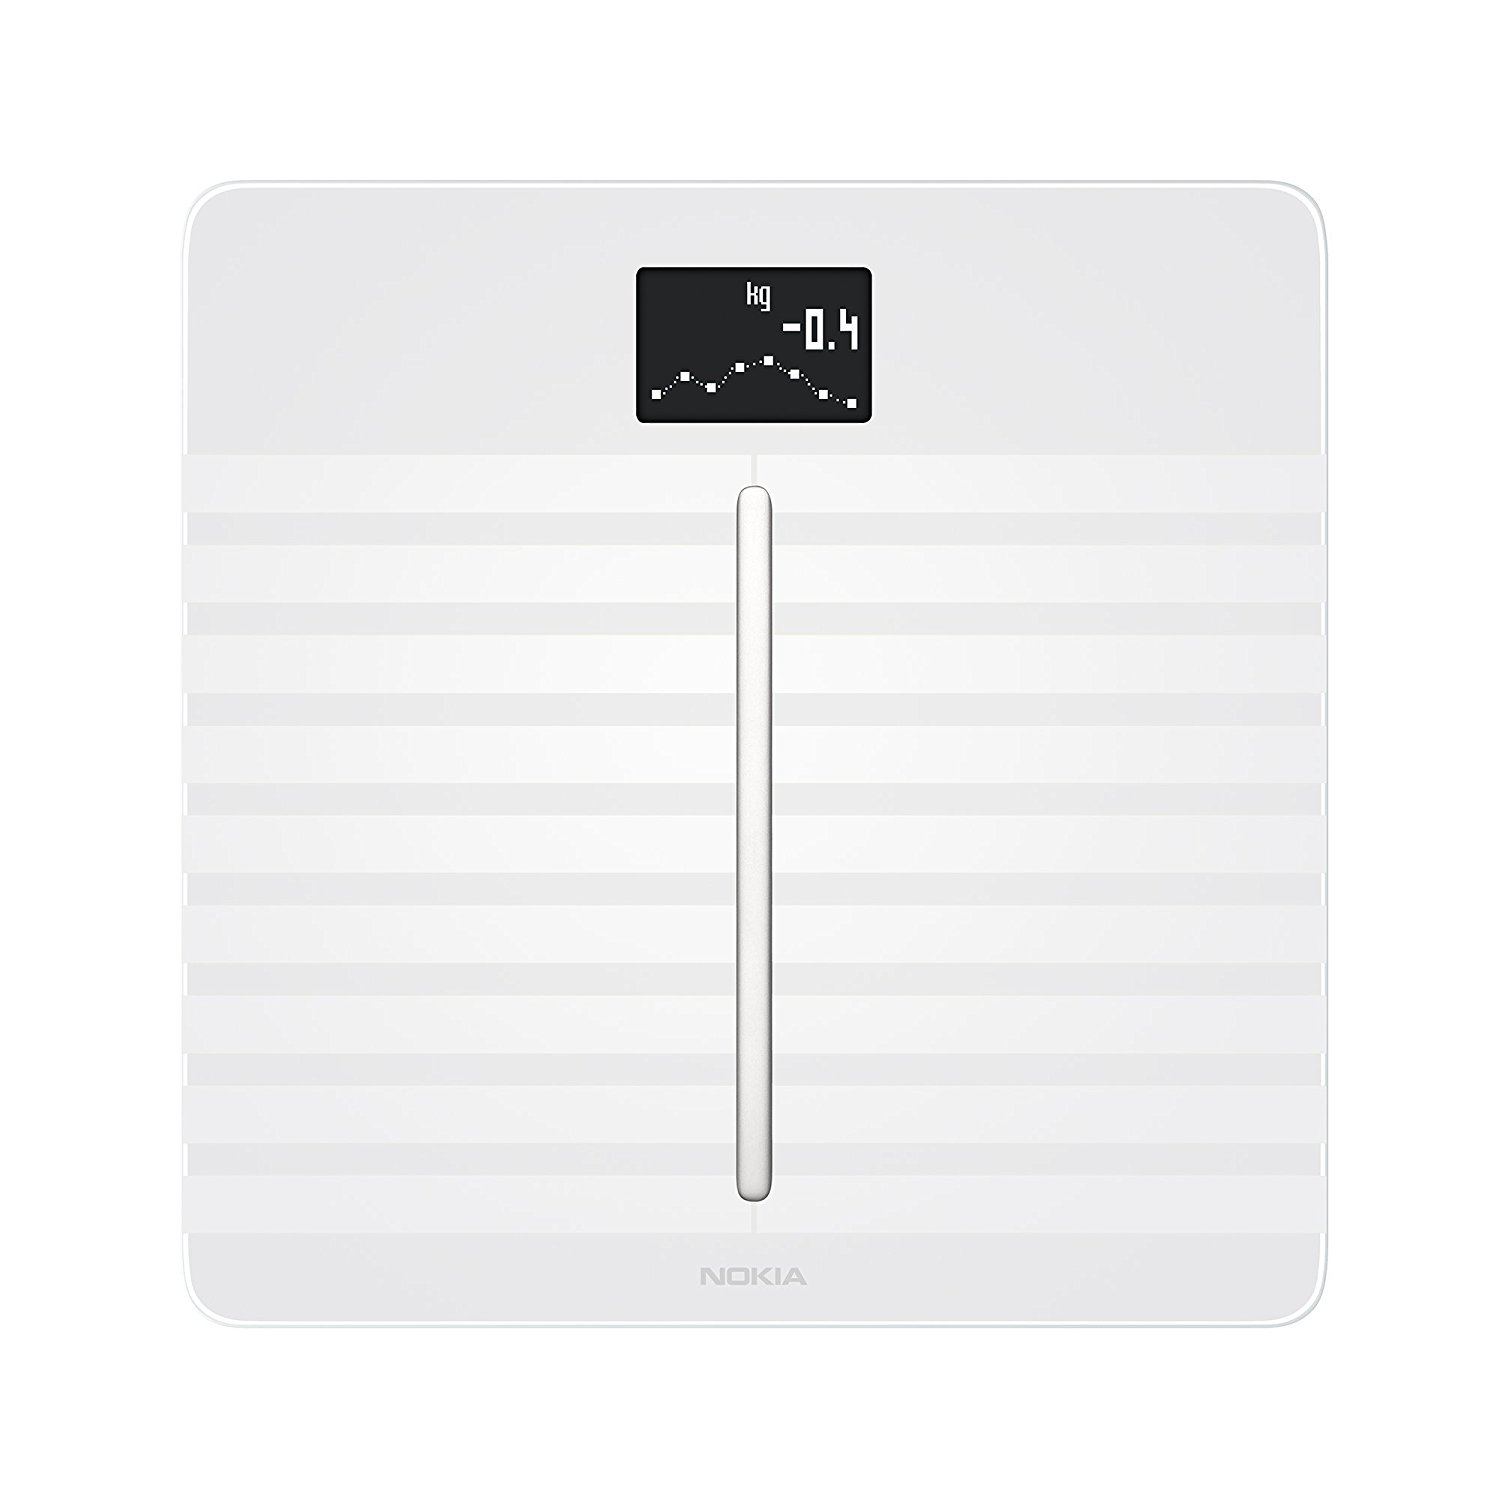 Image of Nokia Body Cardio - Heart Health and Body Composition Scale - Black